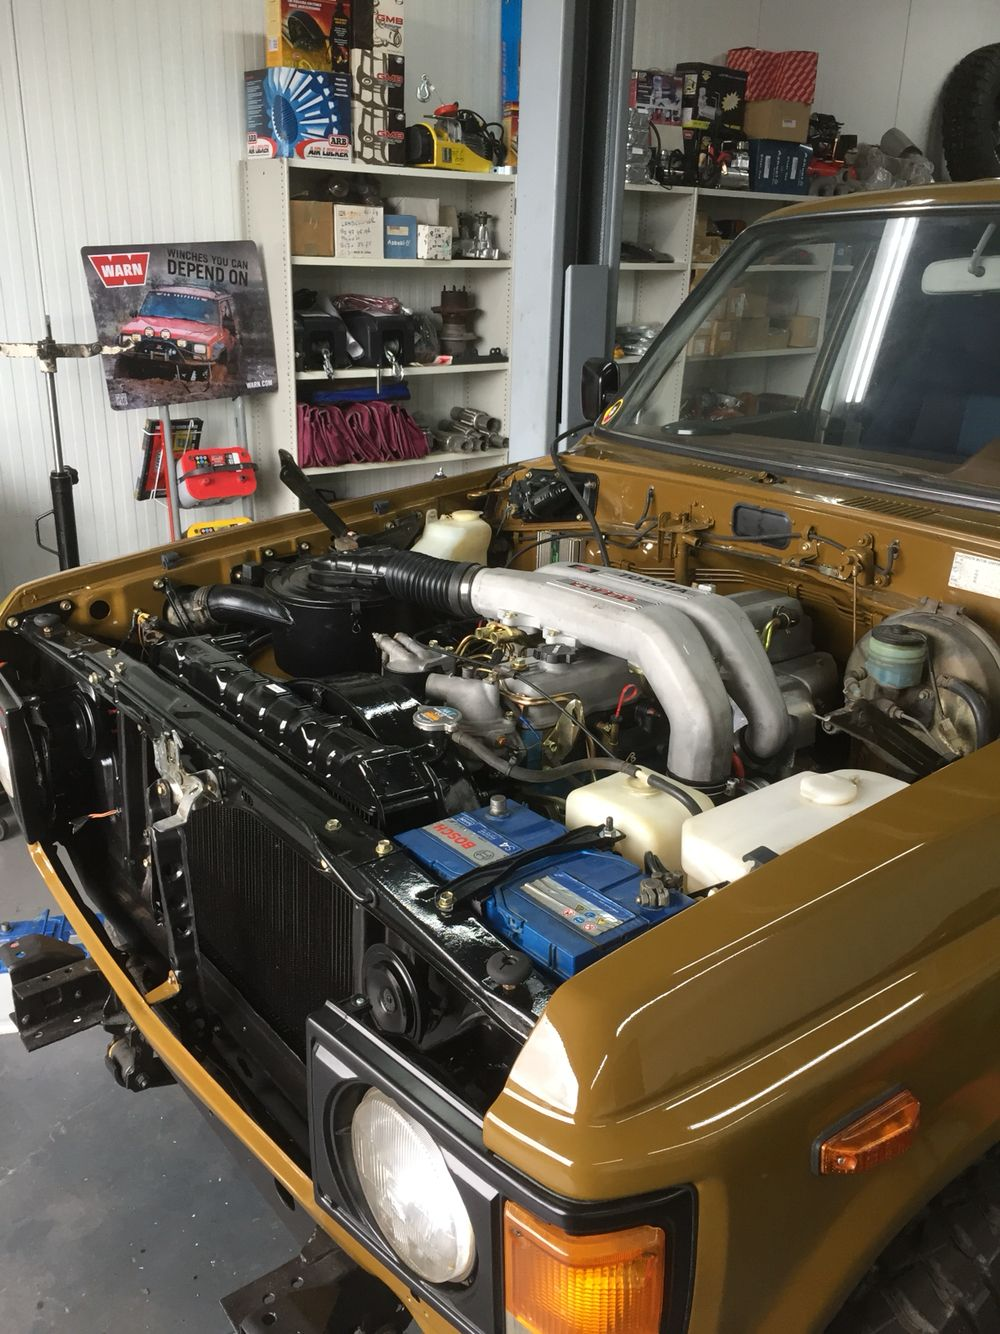 Hj60 12ht conversion | Fj 60 1987 | Toyota trucks, Land